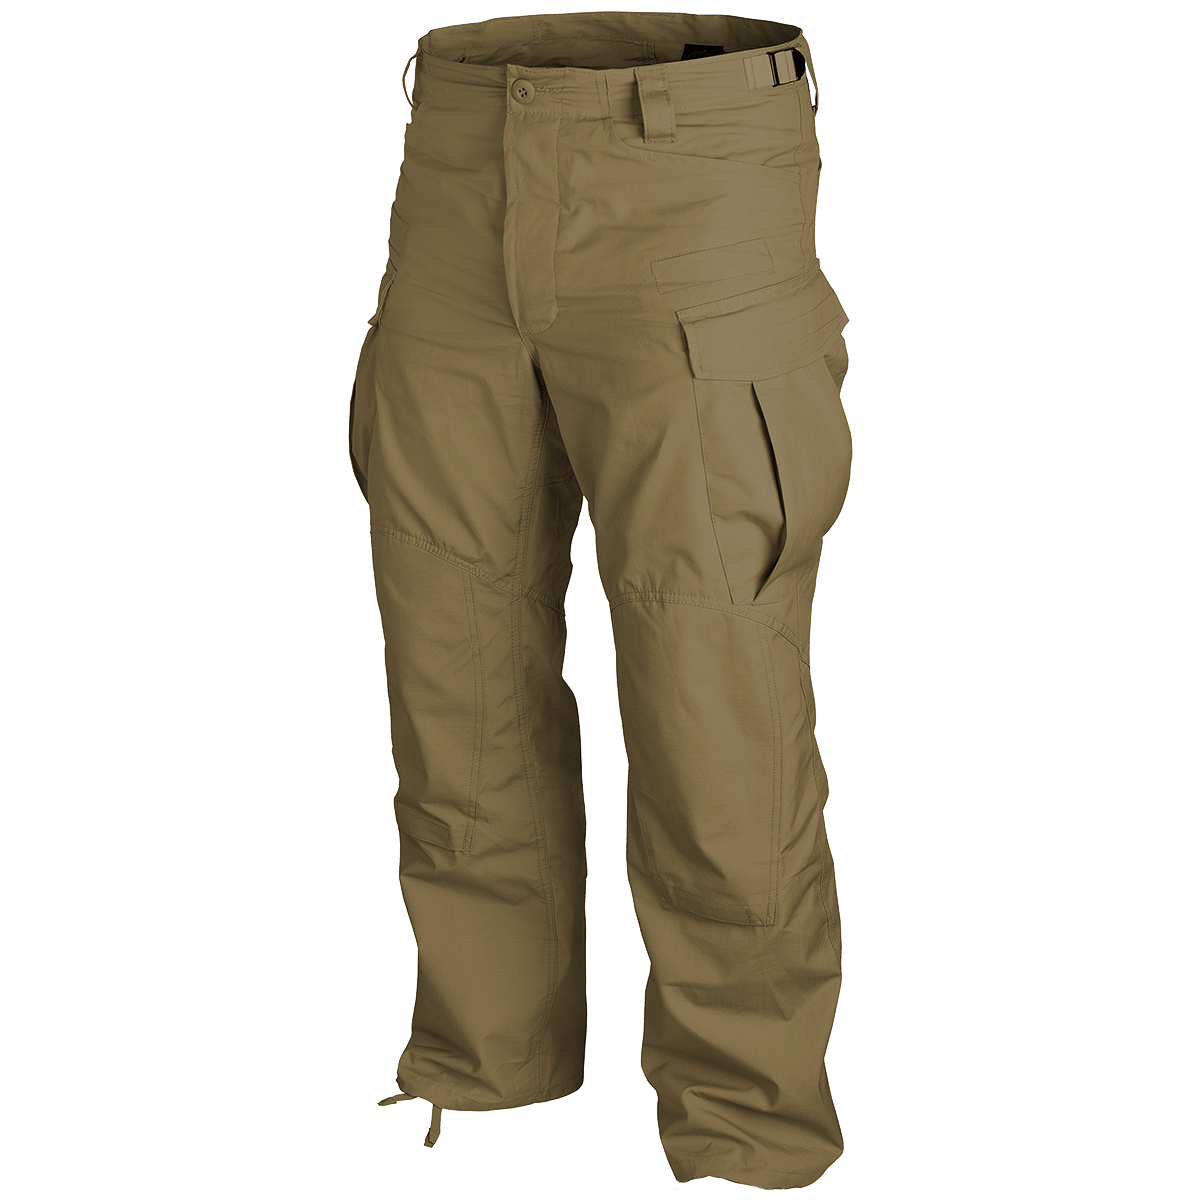 Mens Clothing Cargo Pants